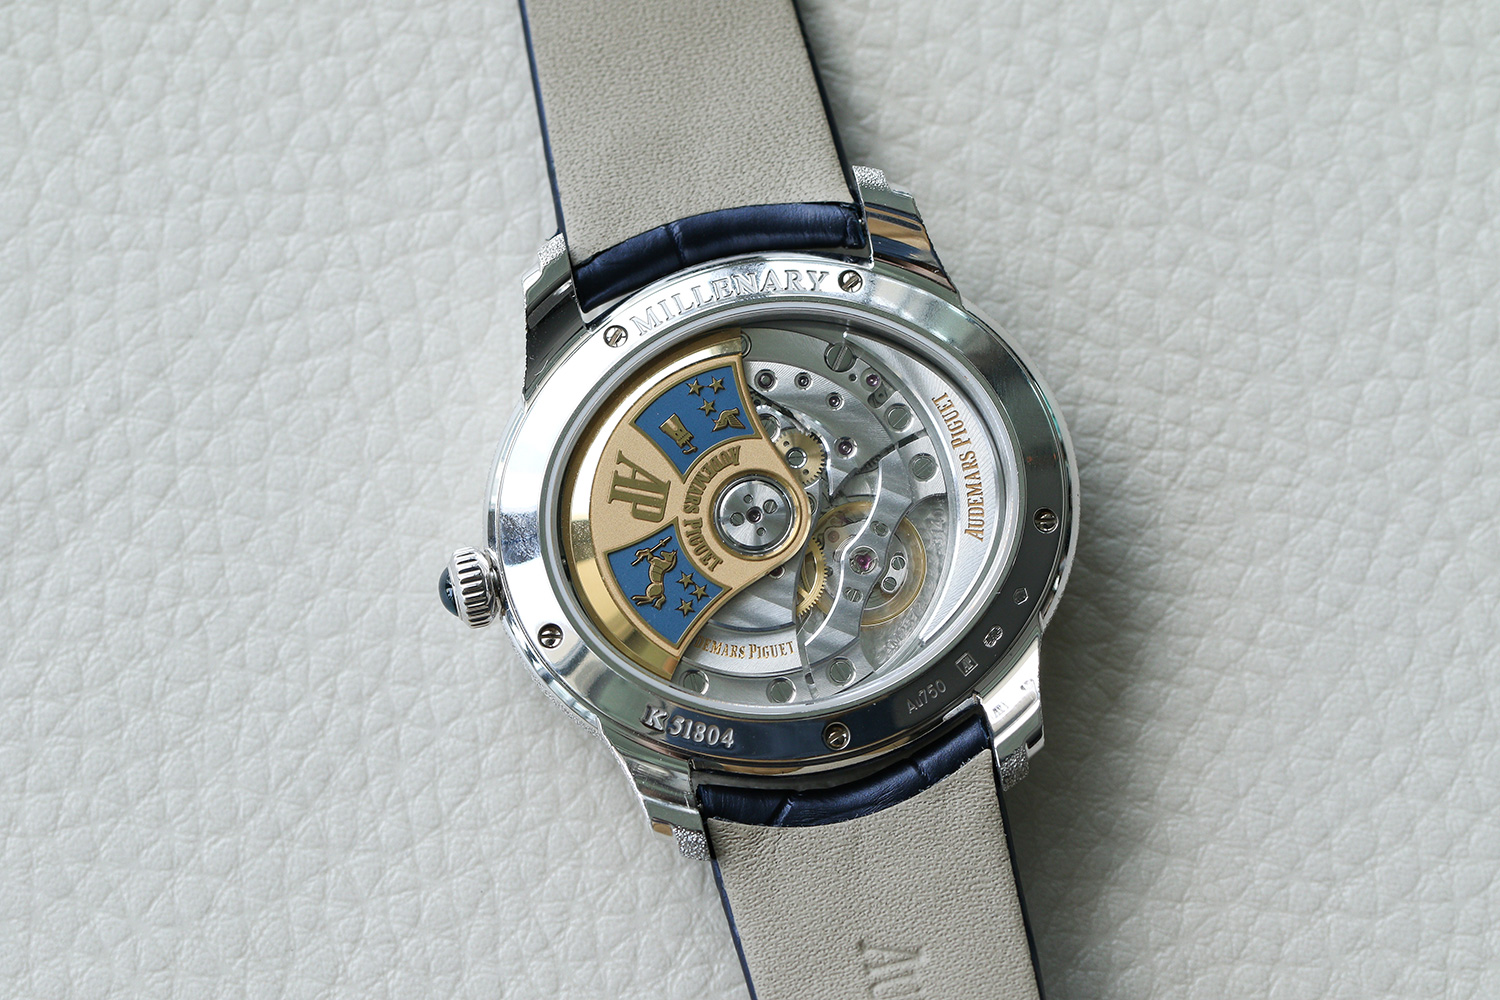 The calibre 3140 through the transparent caseback (Photographed by Kevin Cureau)